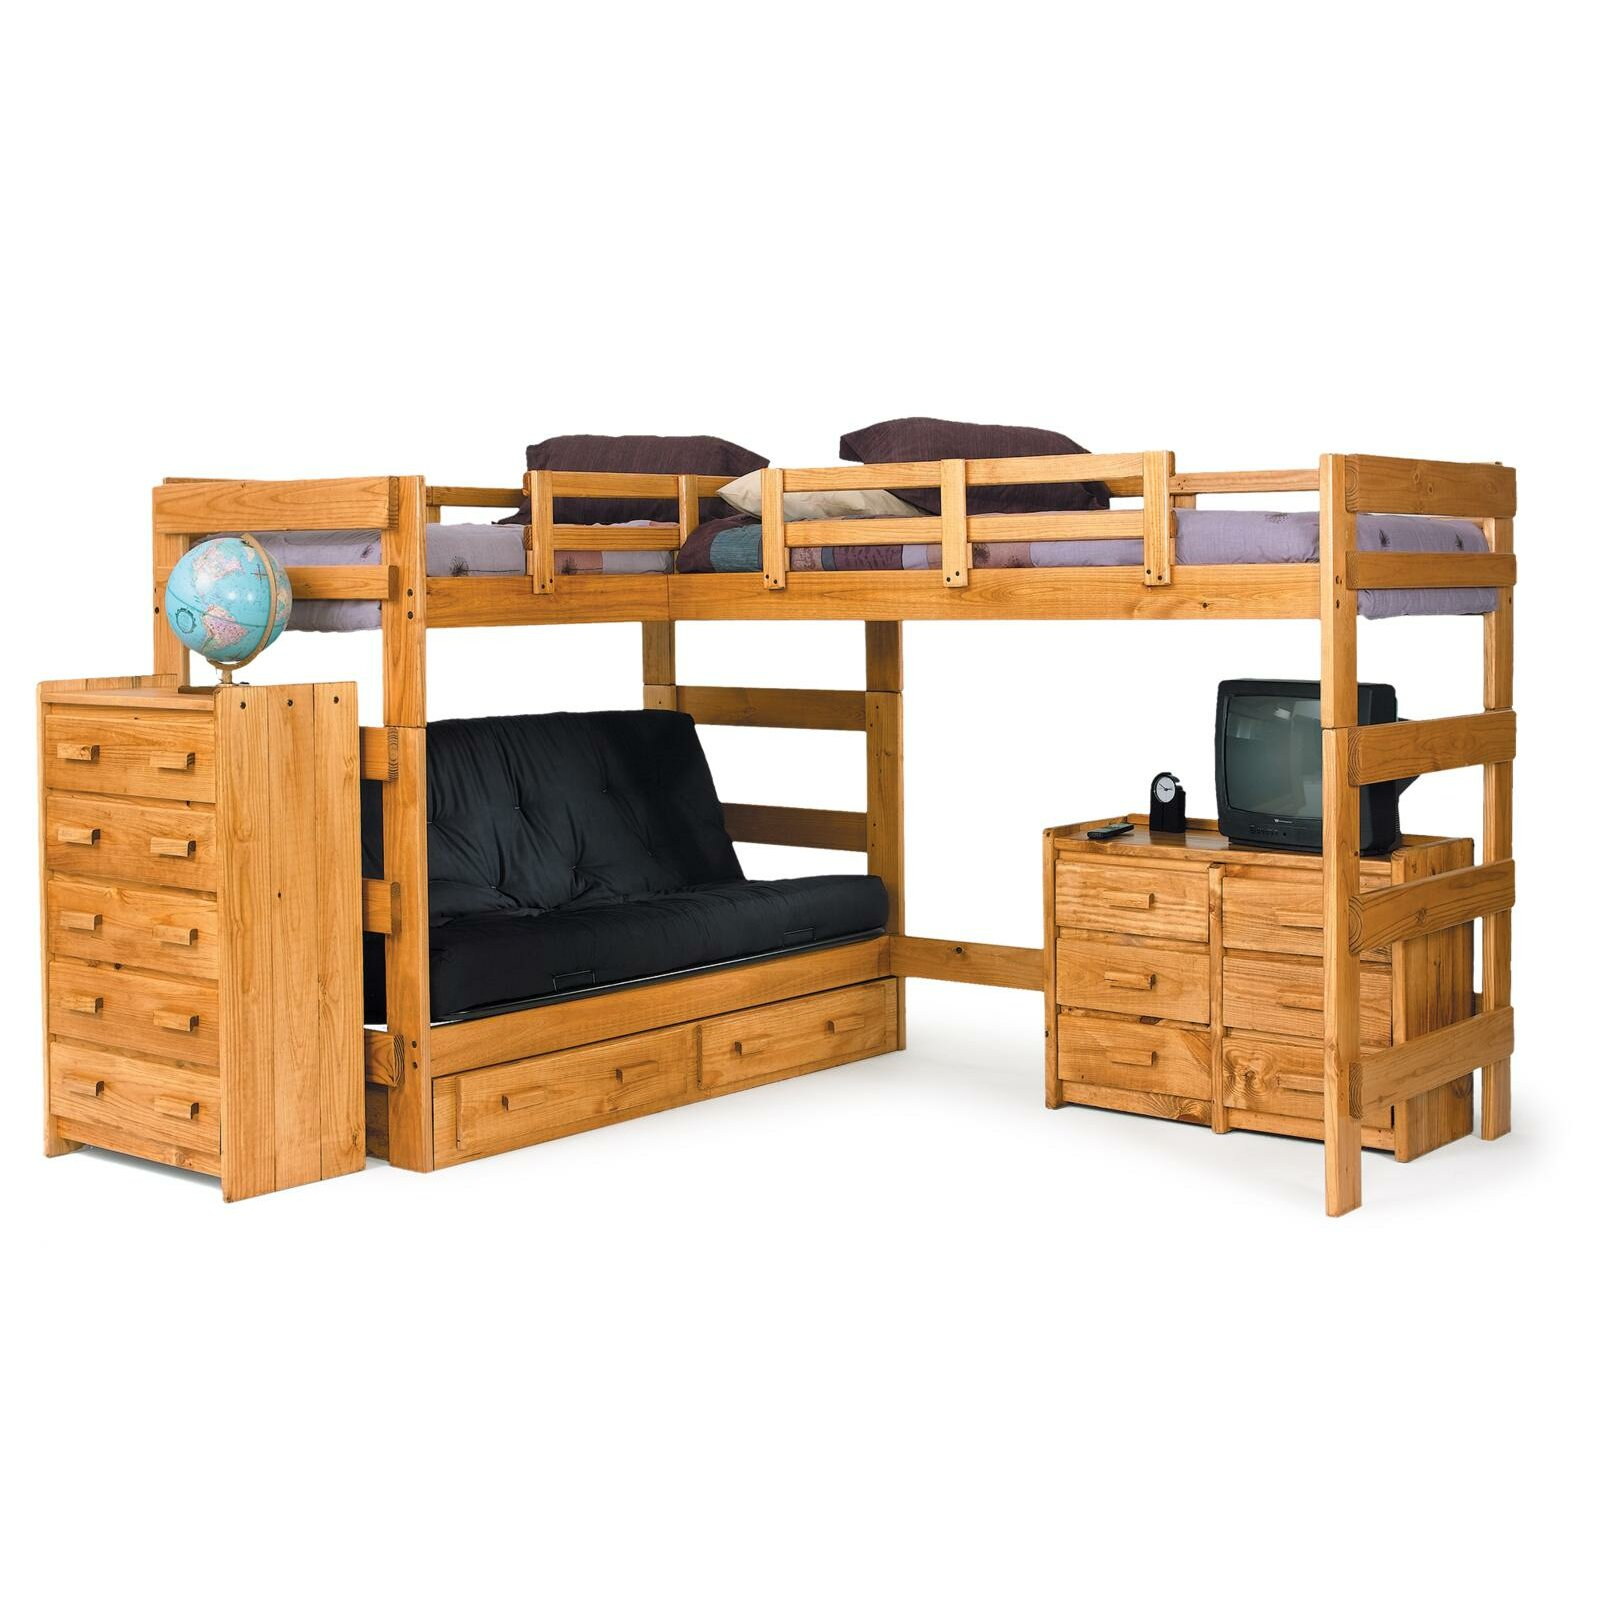 Chelsea home l shaped bunk bed customizable bedroom set for Narrow width bunk beds